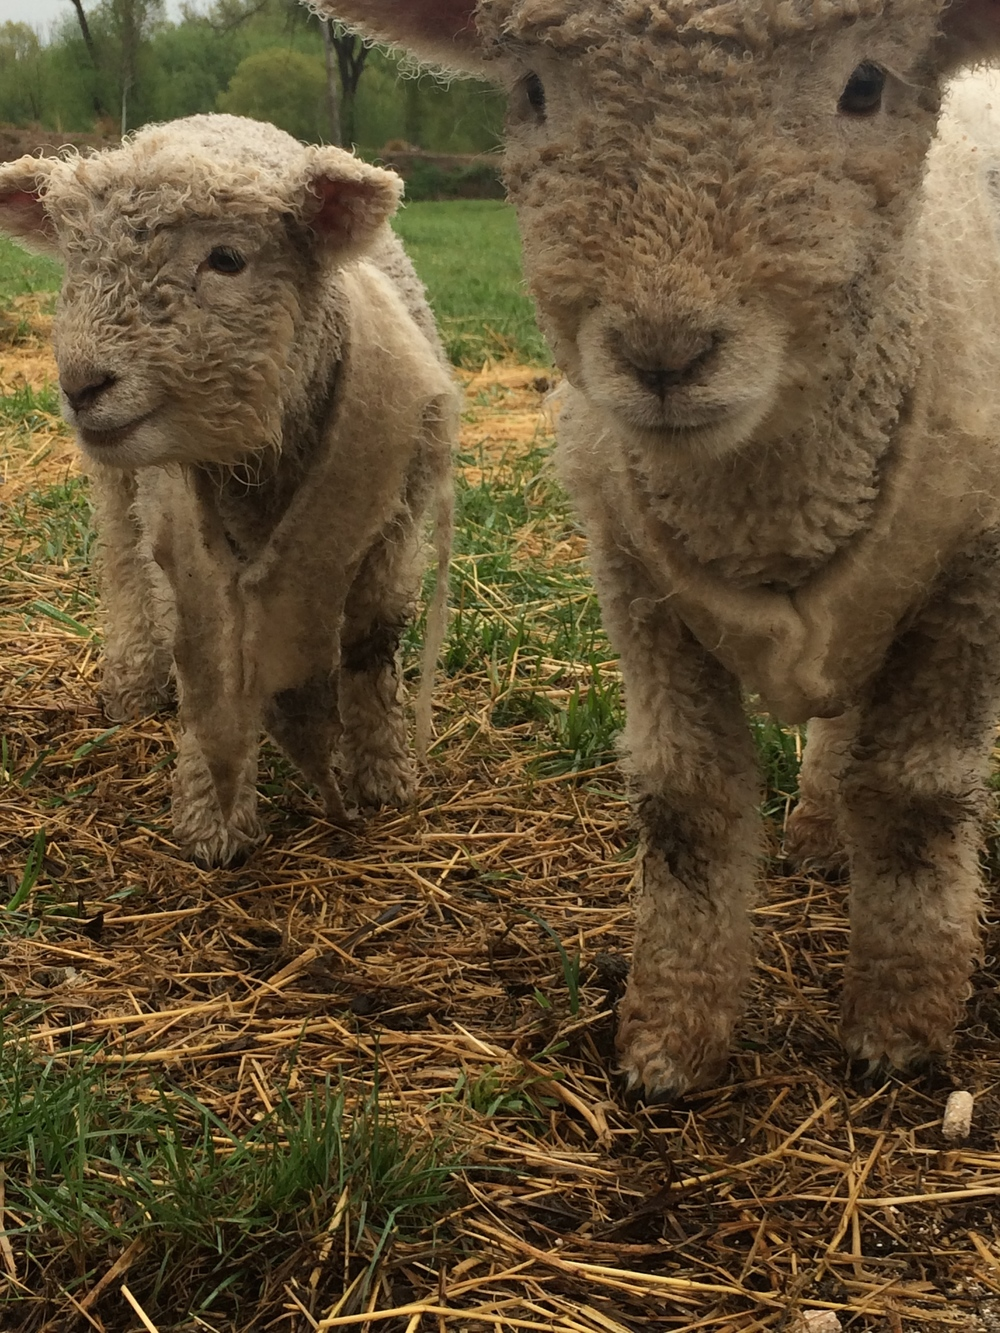 The baby lambs